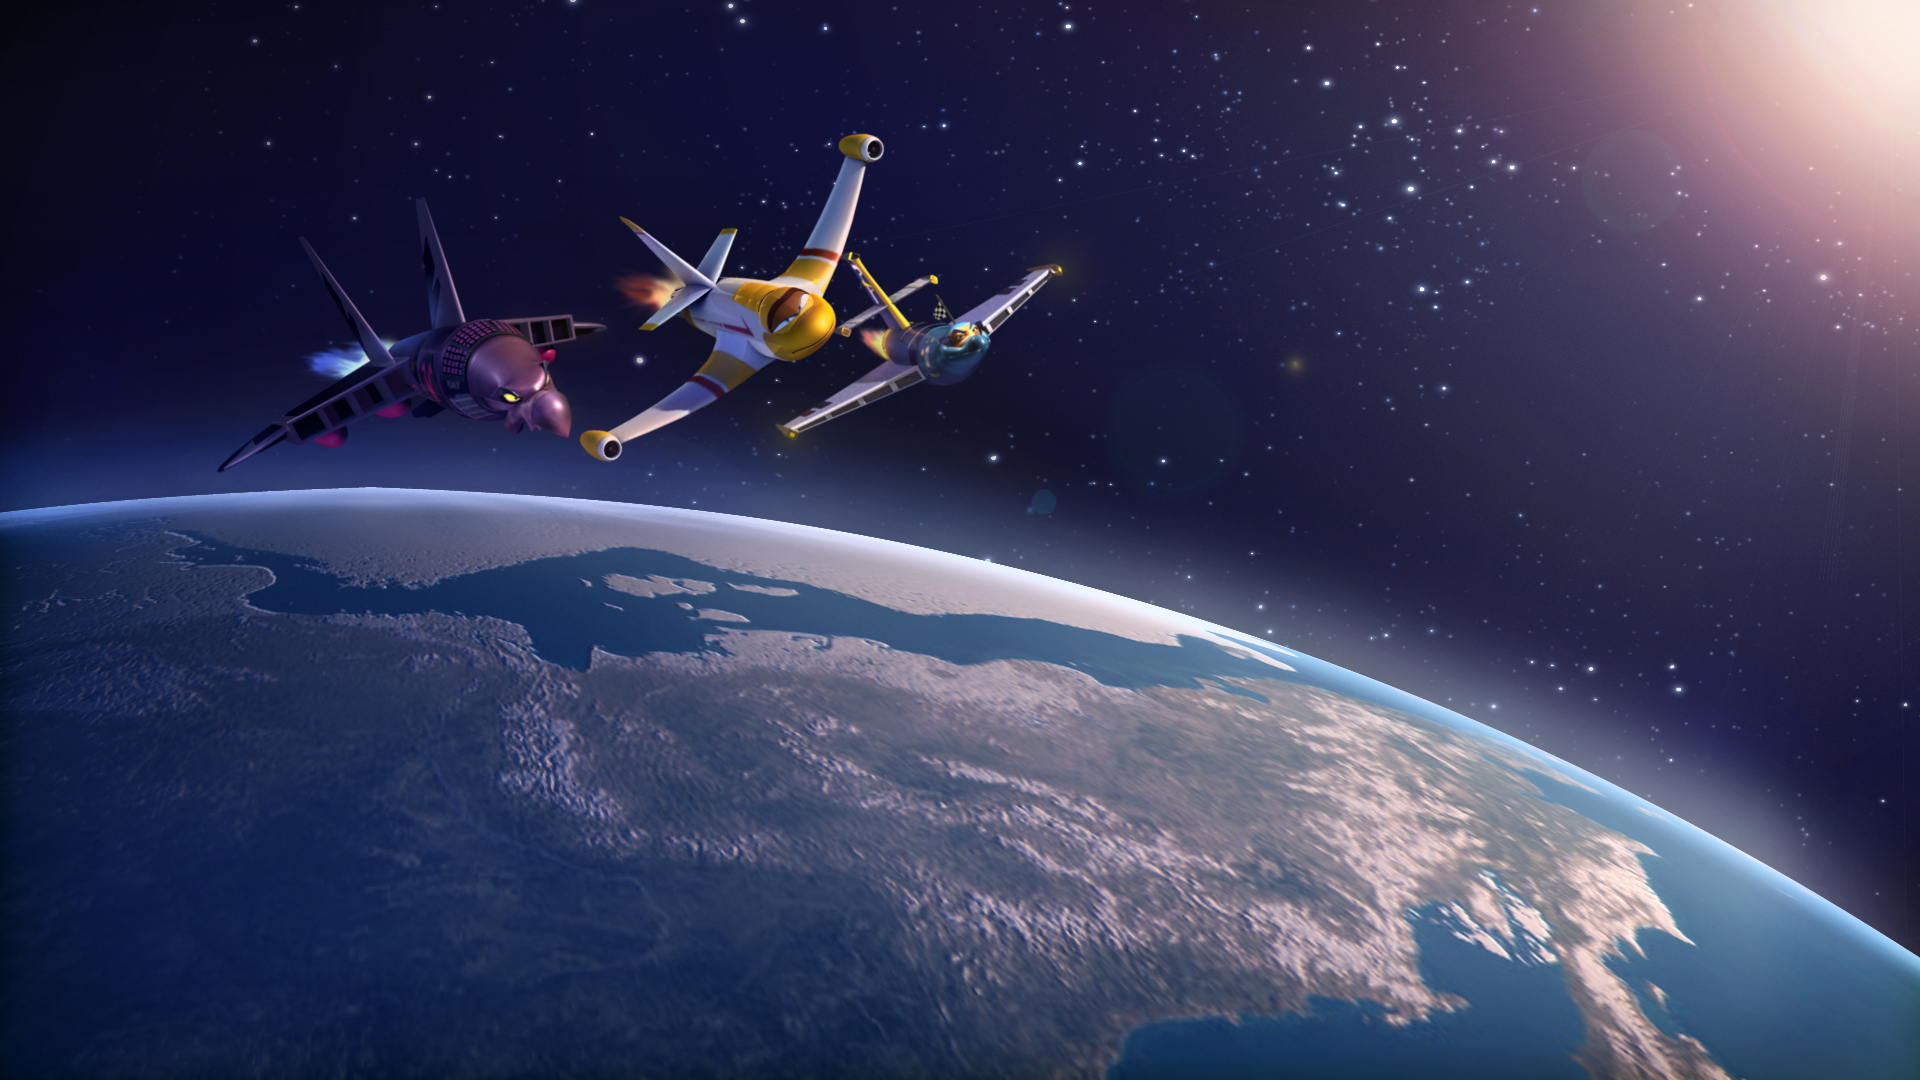 Space Race image